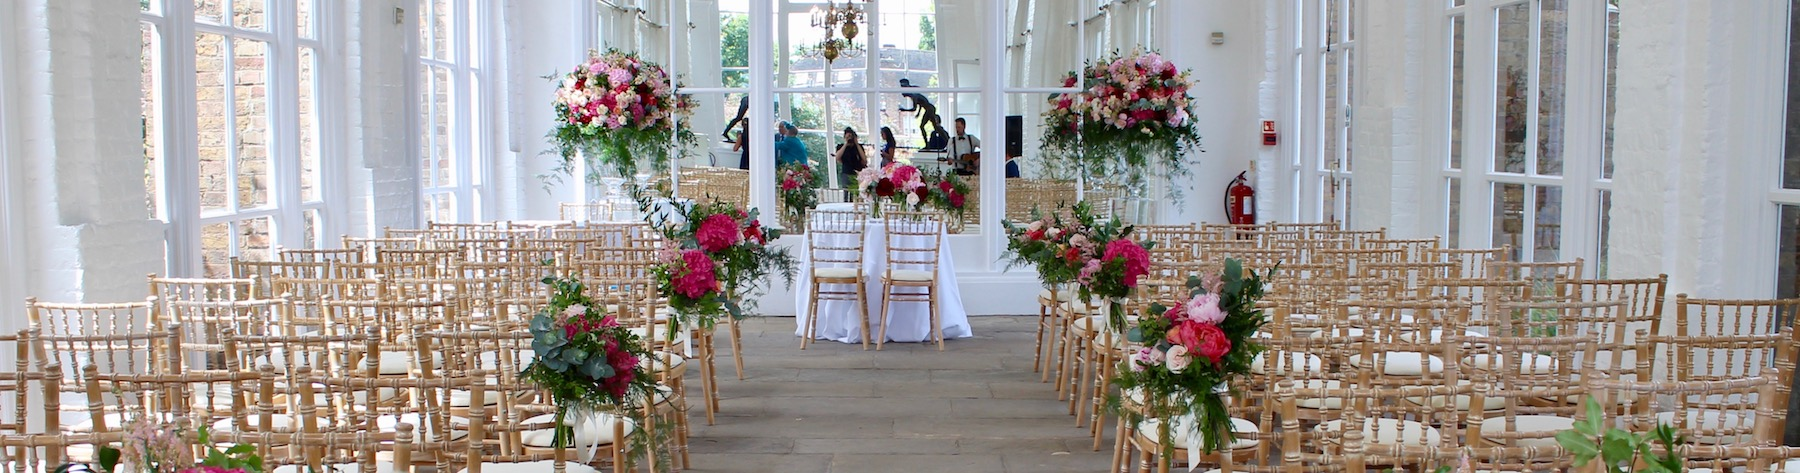 The Orangery Ceremony Wedding Flowers – Version 3